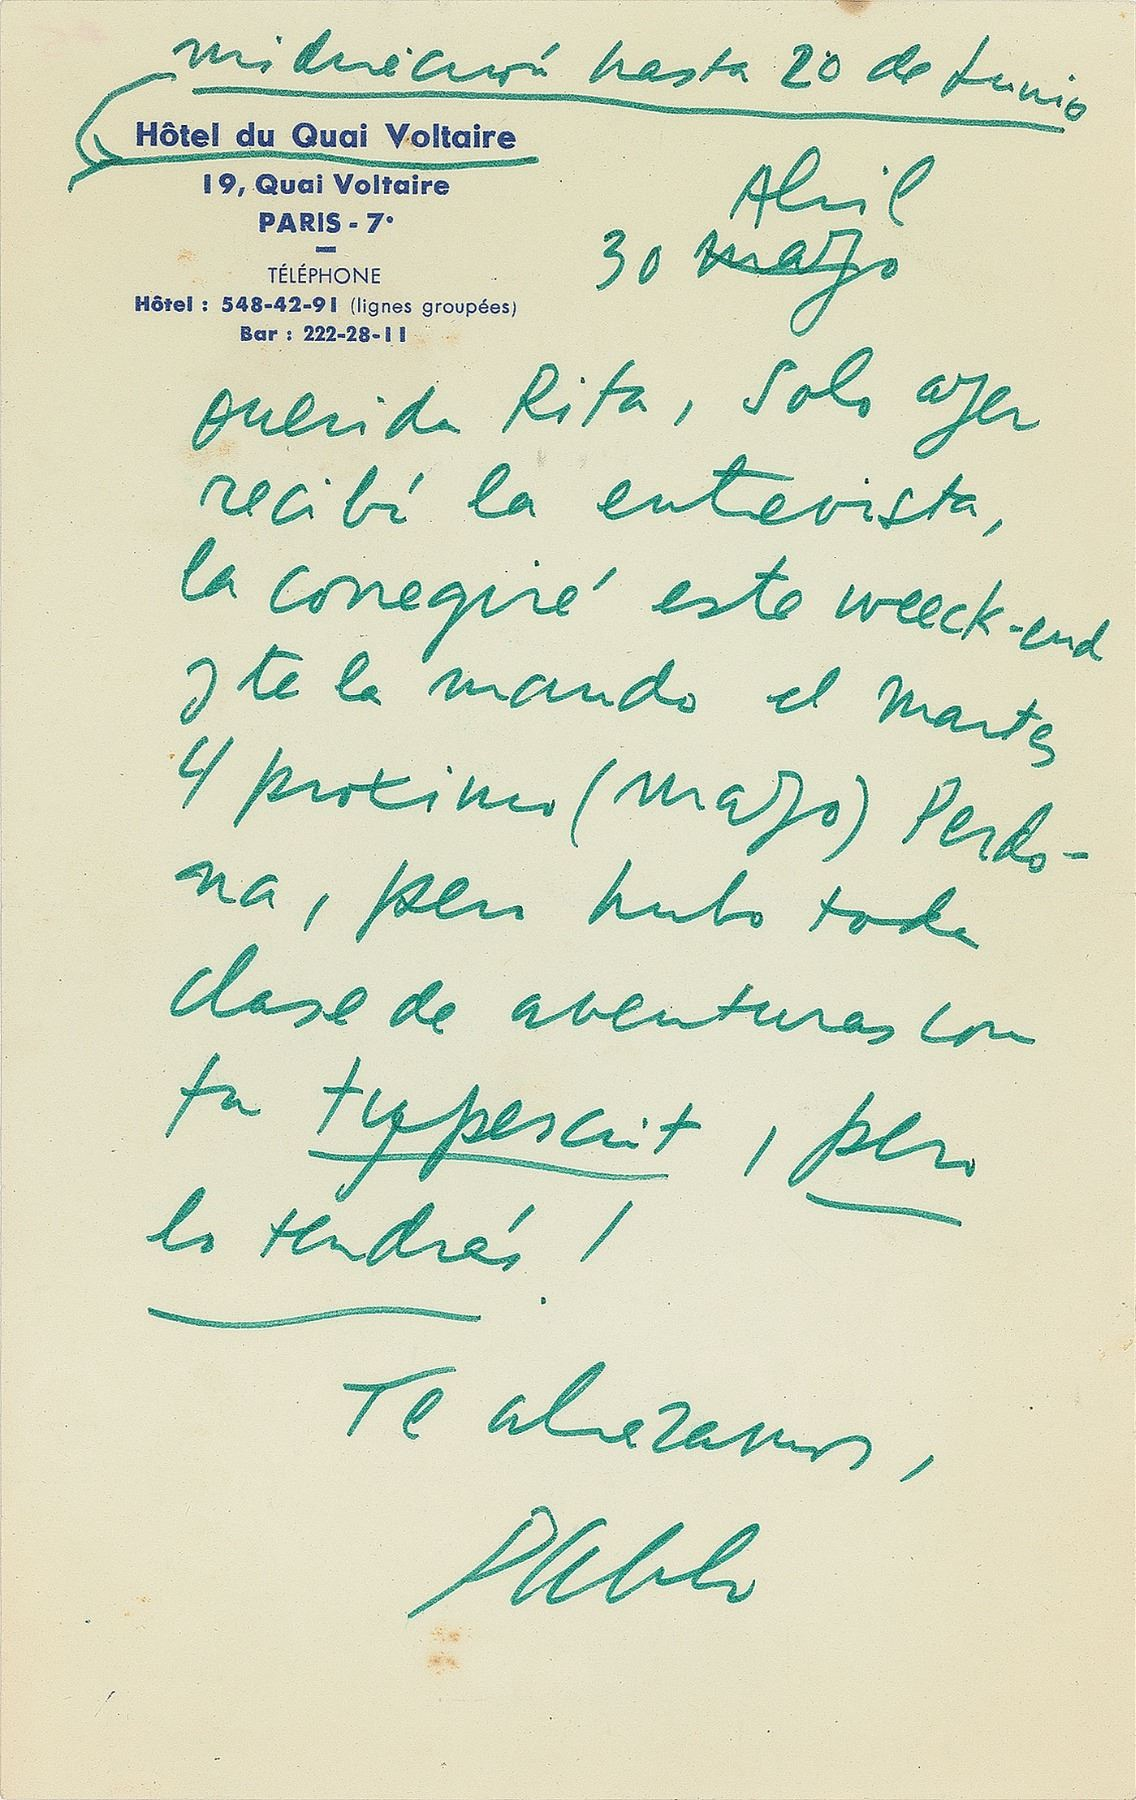 scan of a letter by Pablo Neruda